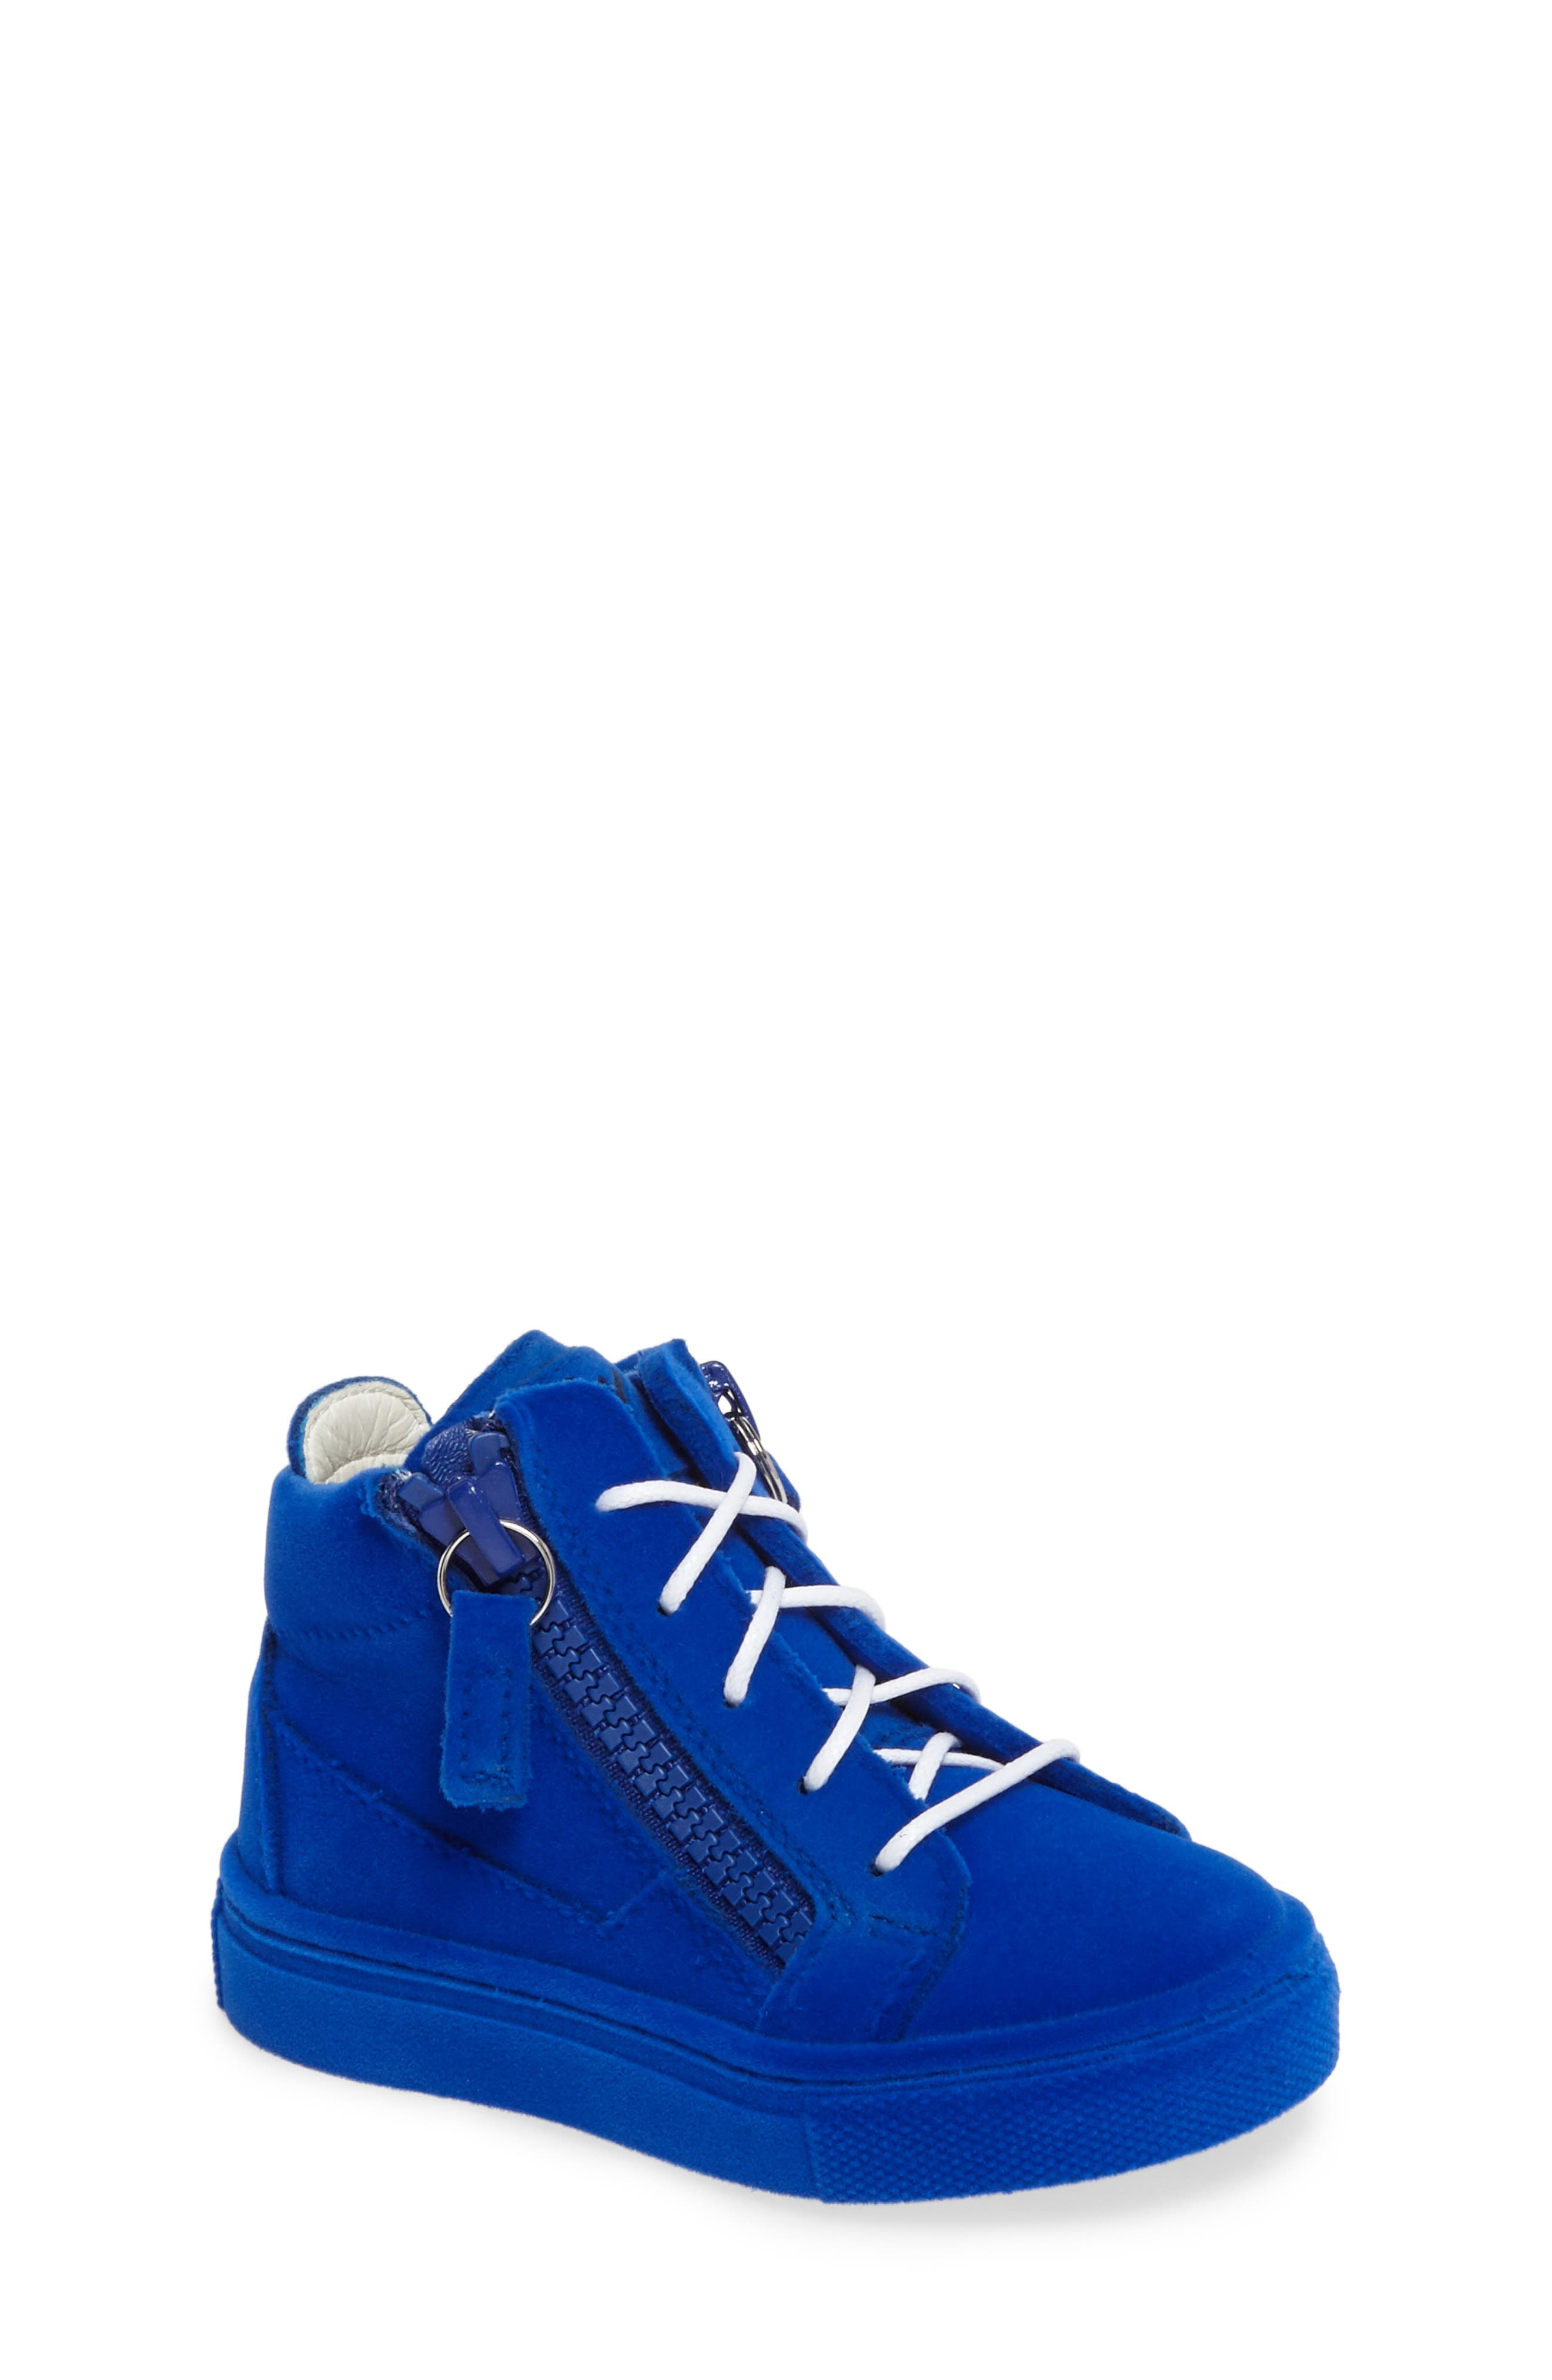 Alternate Image 1 Selected - Giuseppe Zanotti Smuggy Sneaker (Baby, Walker, Toddler & Little Kid)